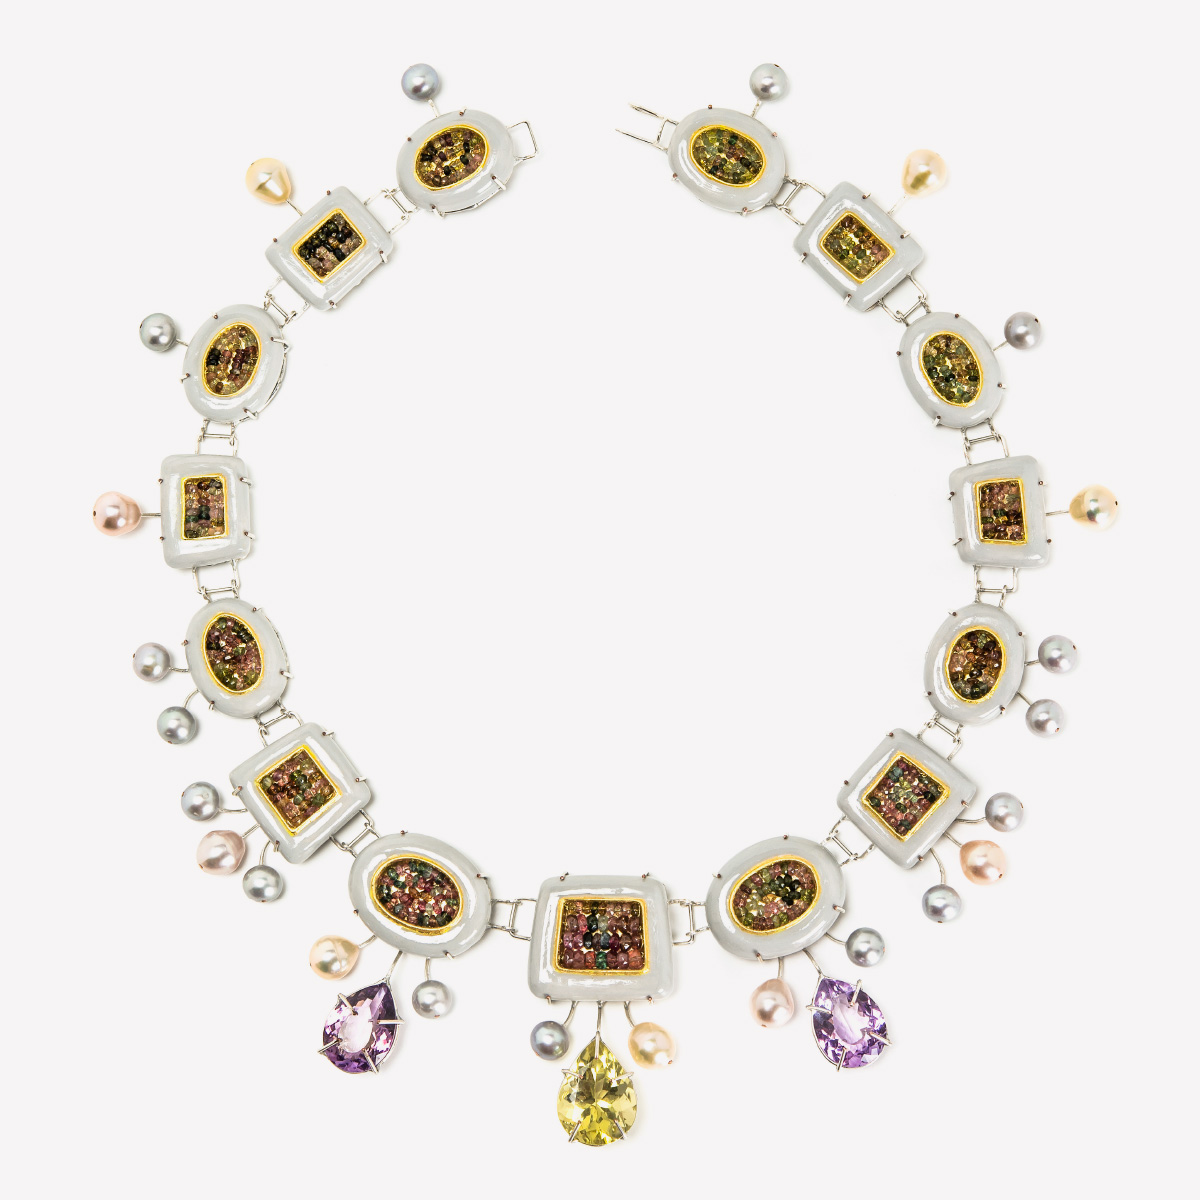 Contemporary Necklace Cinis silver plated copper citrine rose amethysts tourmalines Gian Luca Bartellone